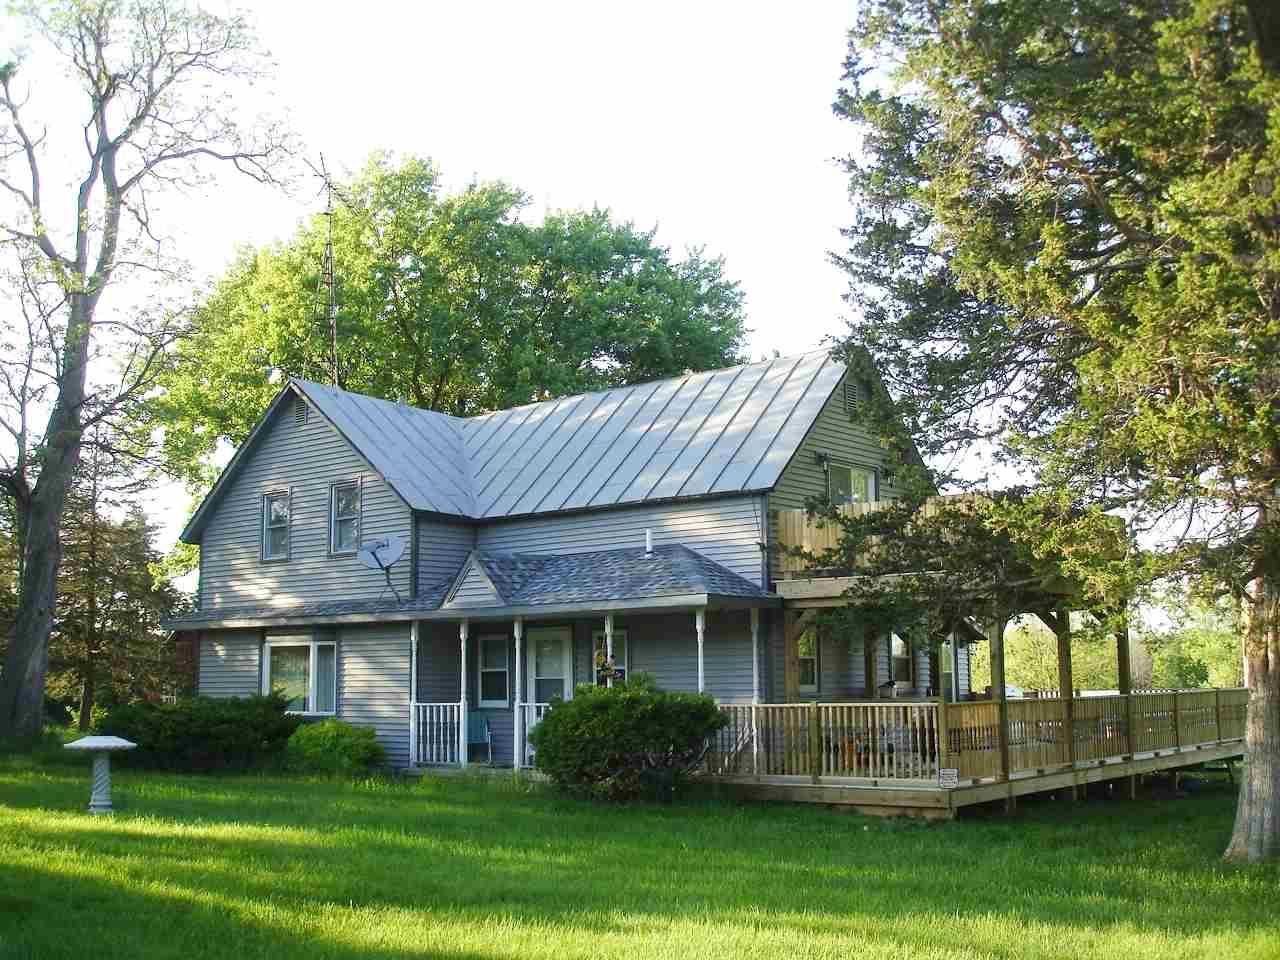 """Farmette"" with 11.15 acres and a Folk Farm House that has been completely redone inside and outside.  The home is beautifully decorated and has all brand new appliances.  Expect to be impressed.  Maintenance free exterior with a brand new deck (up and down).  The outbuildings are structurally sound and could be fully  functional with some TLC.  Main barn is 40'x80' with 2 stalls. Very nice location, great house and wonderful acreage."